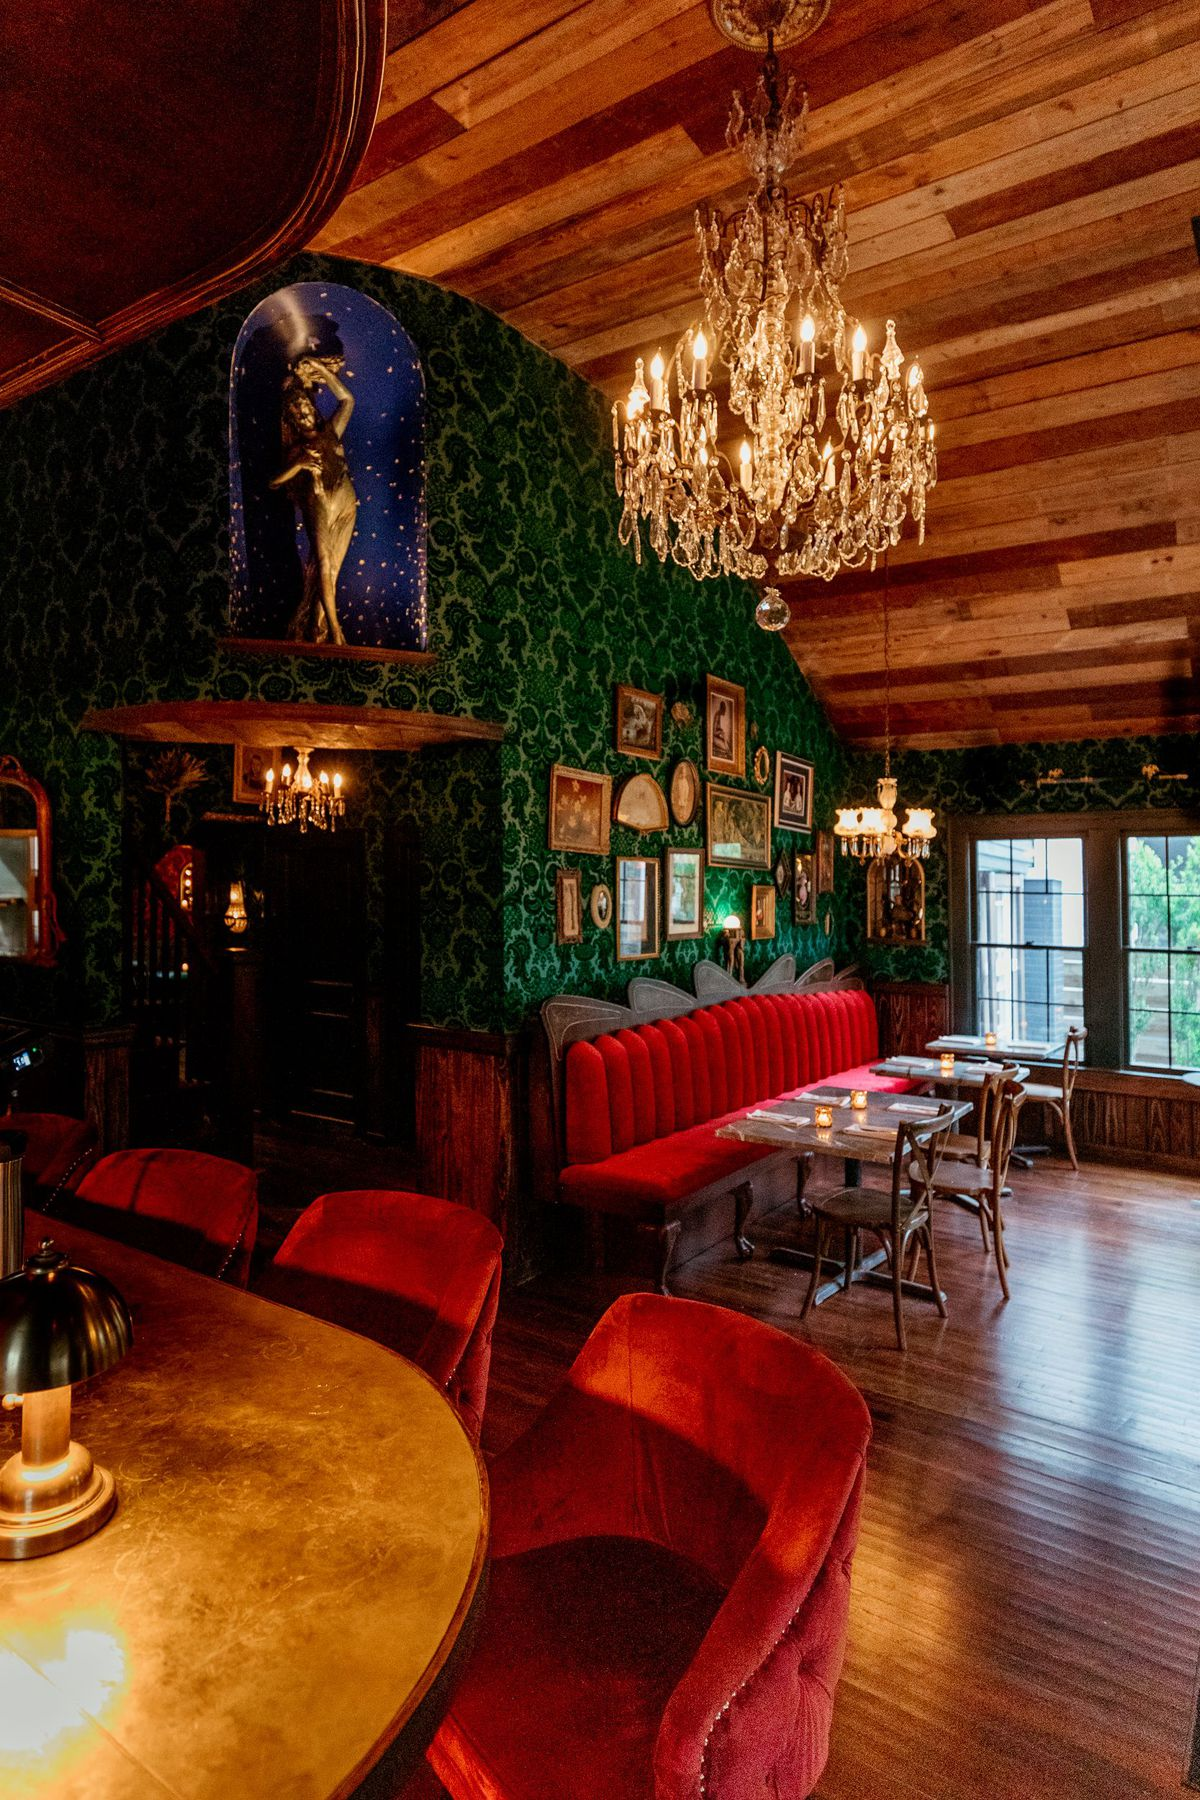 wood ceiling, chandelier, forest green wallpaper, red booth, very New Orleans vibes